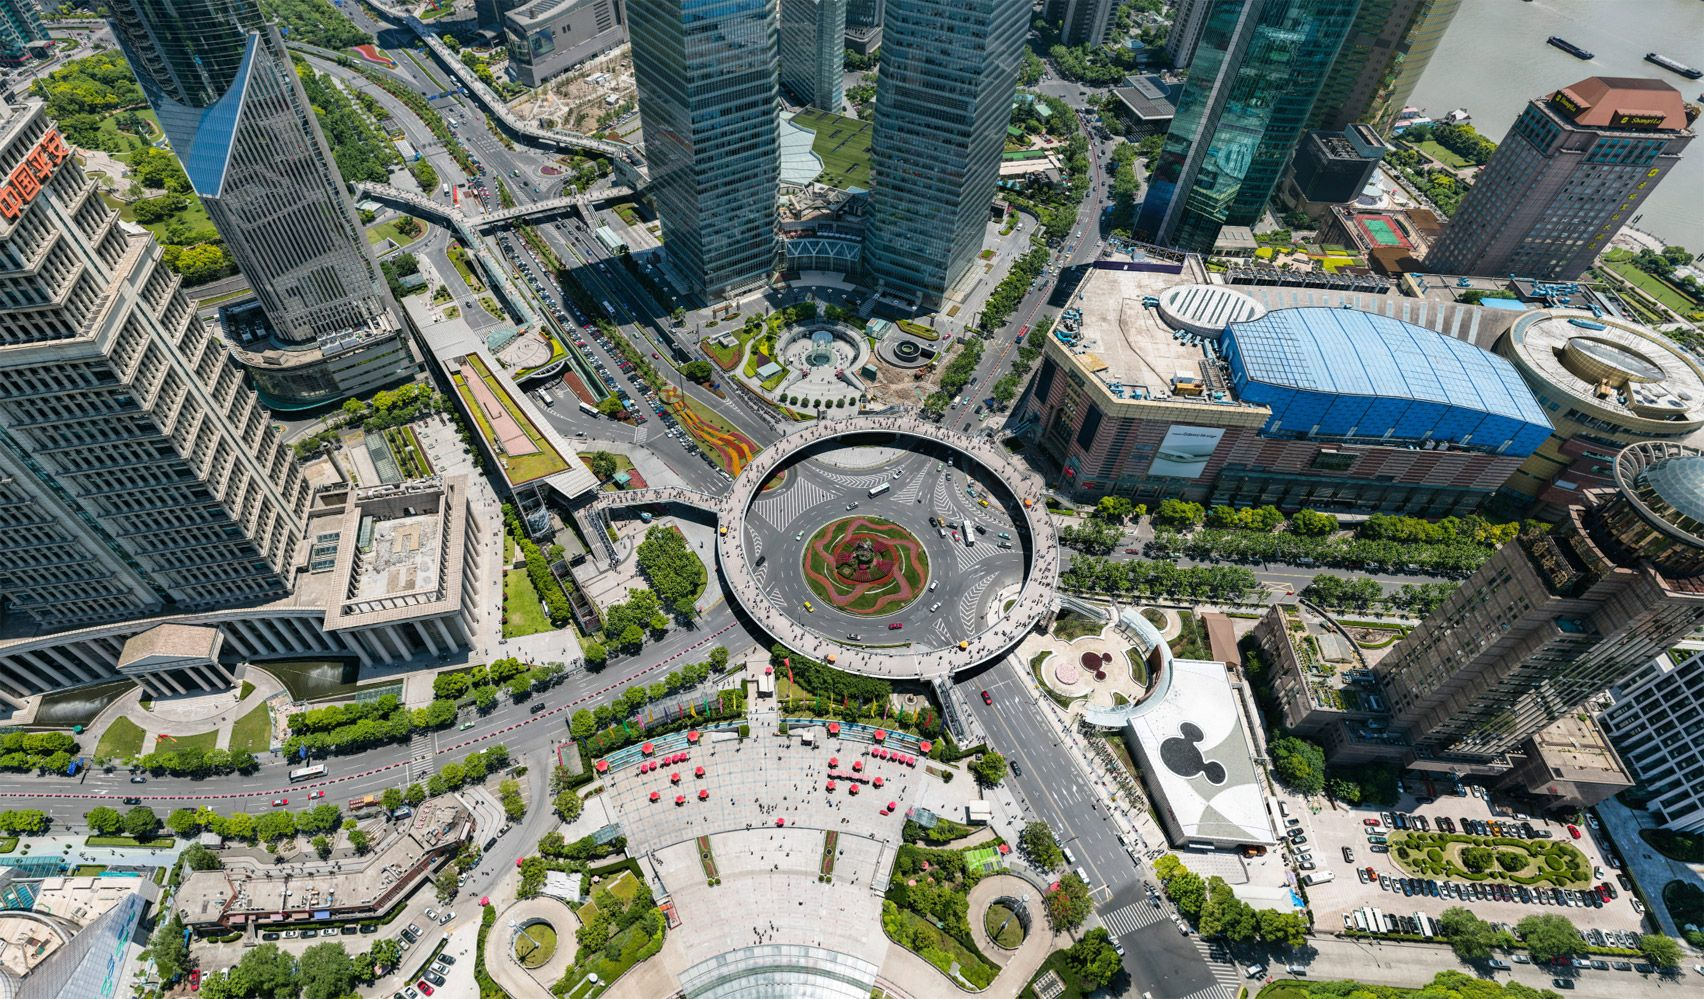 195 Gigapixel Photo Of Shanghai By Bigpixel Allows Viewers To See Street Level Detail Photo Shanghai High Resolution Photos